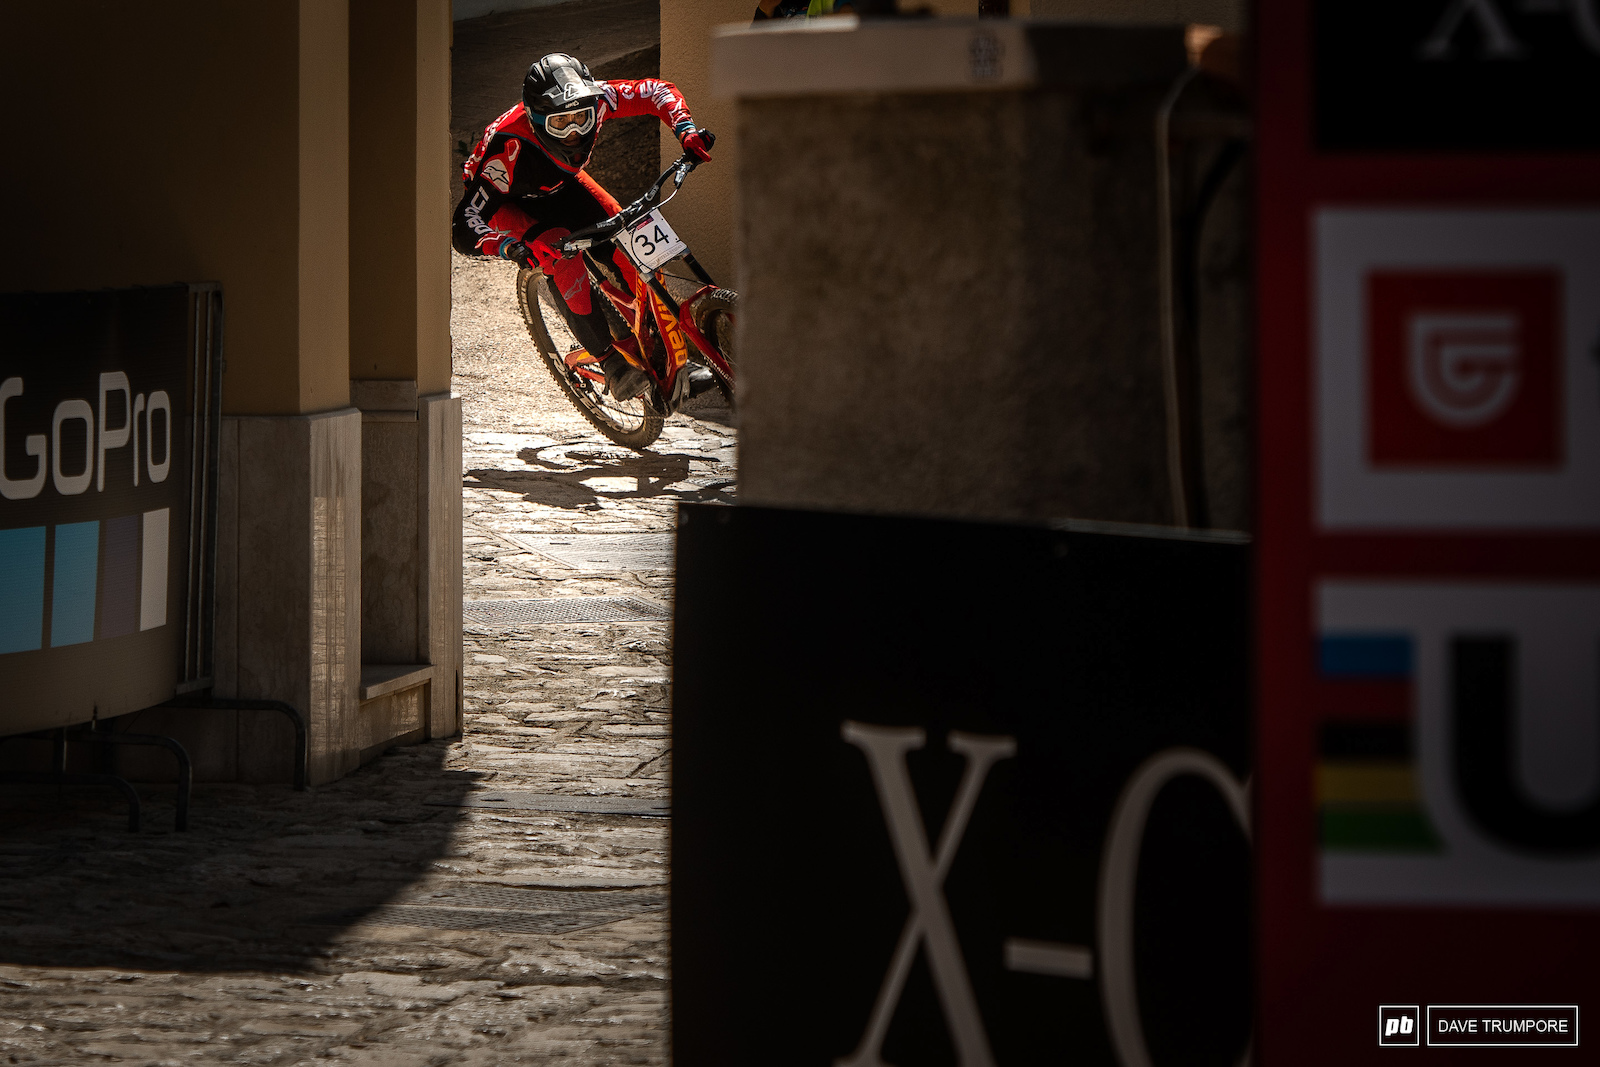 Dakotah Norton makes his way through the narrow alley in into the finish arena.